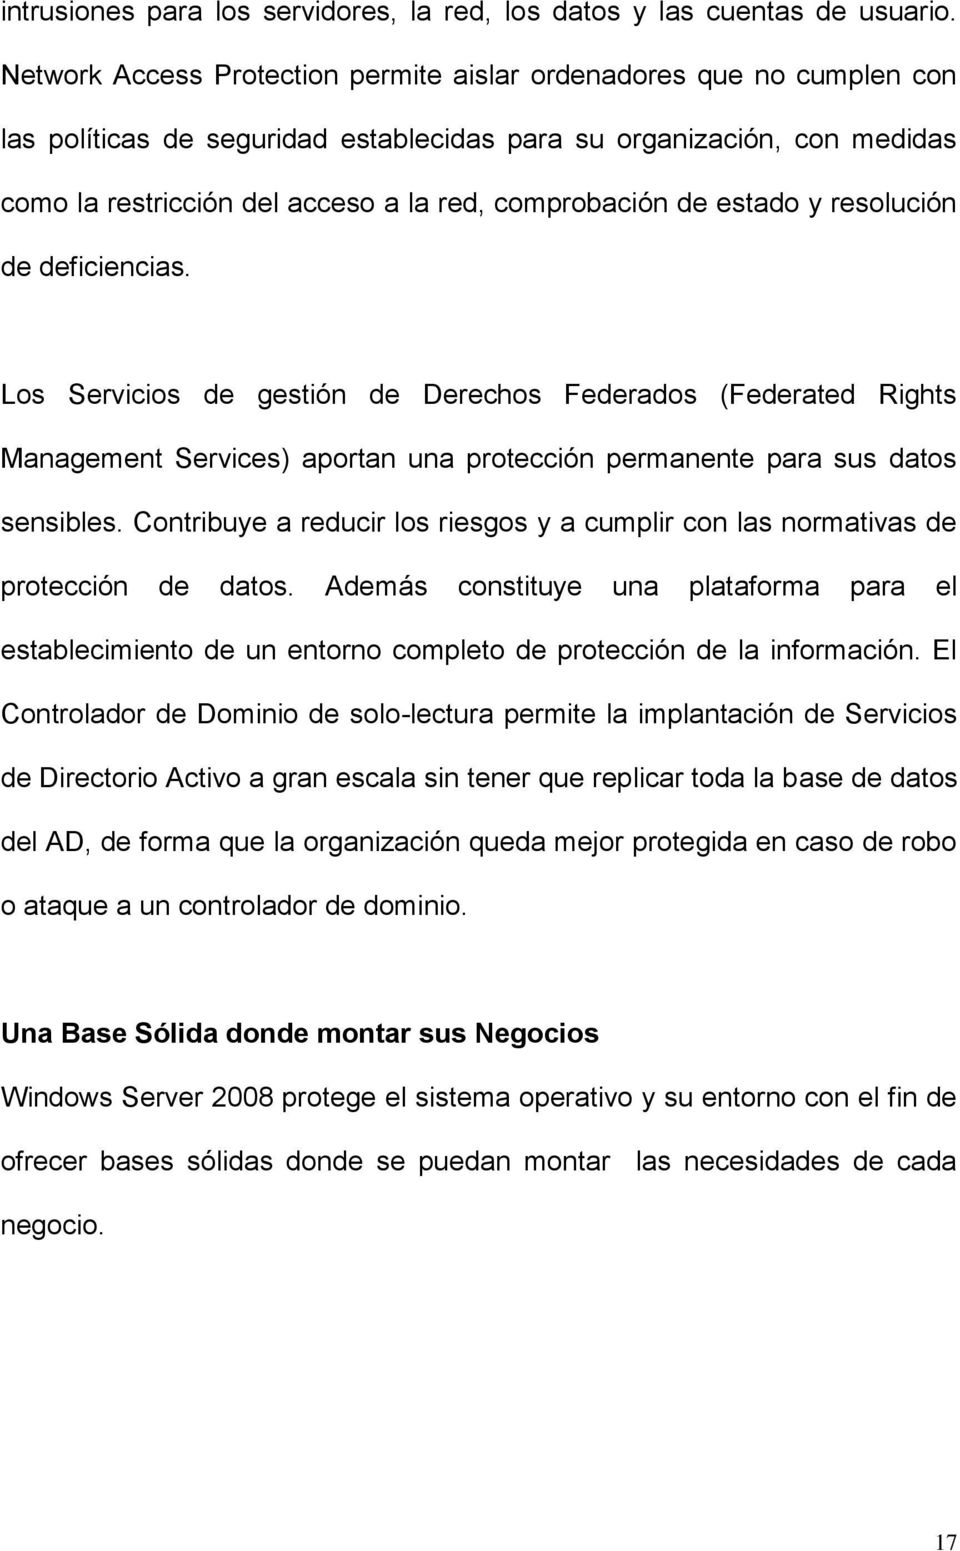 de estado y resolución de deficiencias. Los Servicios de gestión de Derechos Federados (Federated Rights Management Services) aportan una protección permanente para sus datos sensibles.